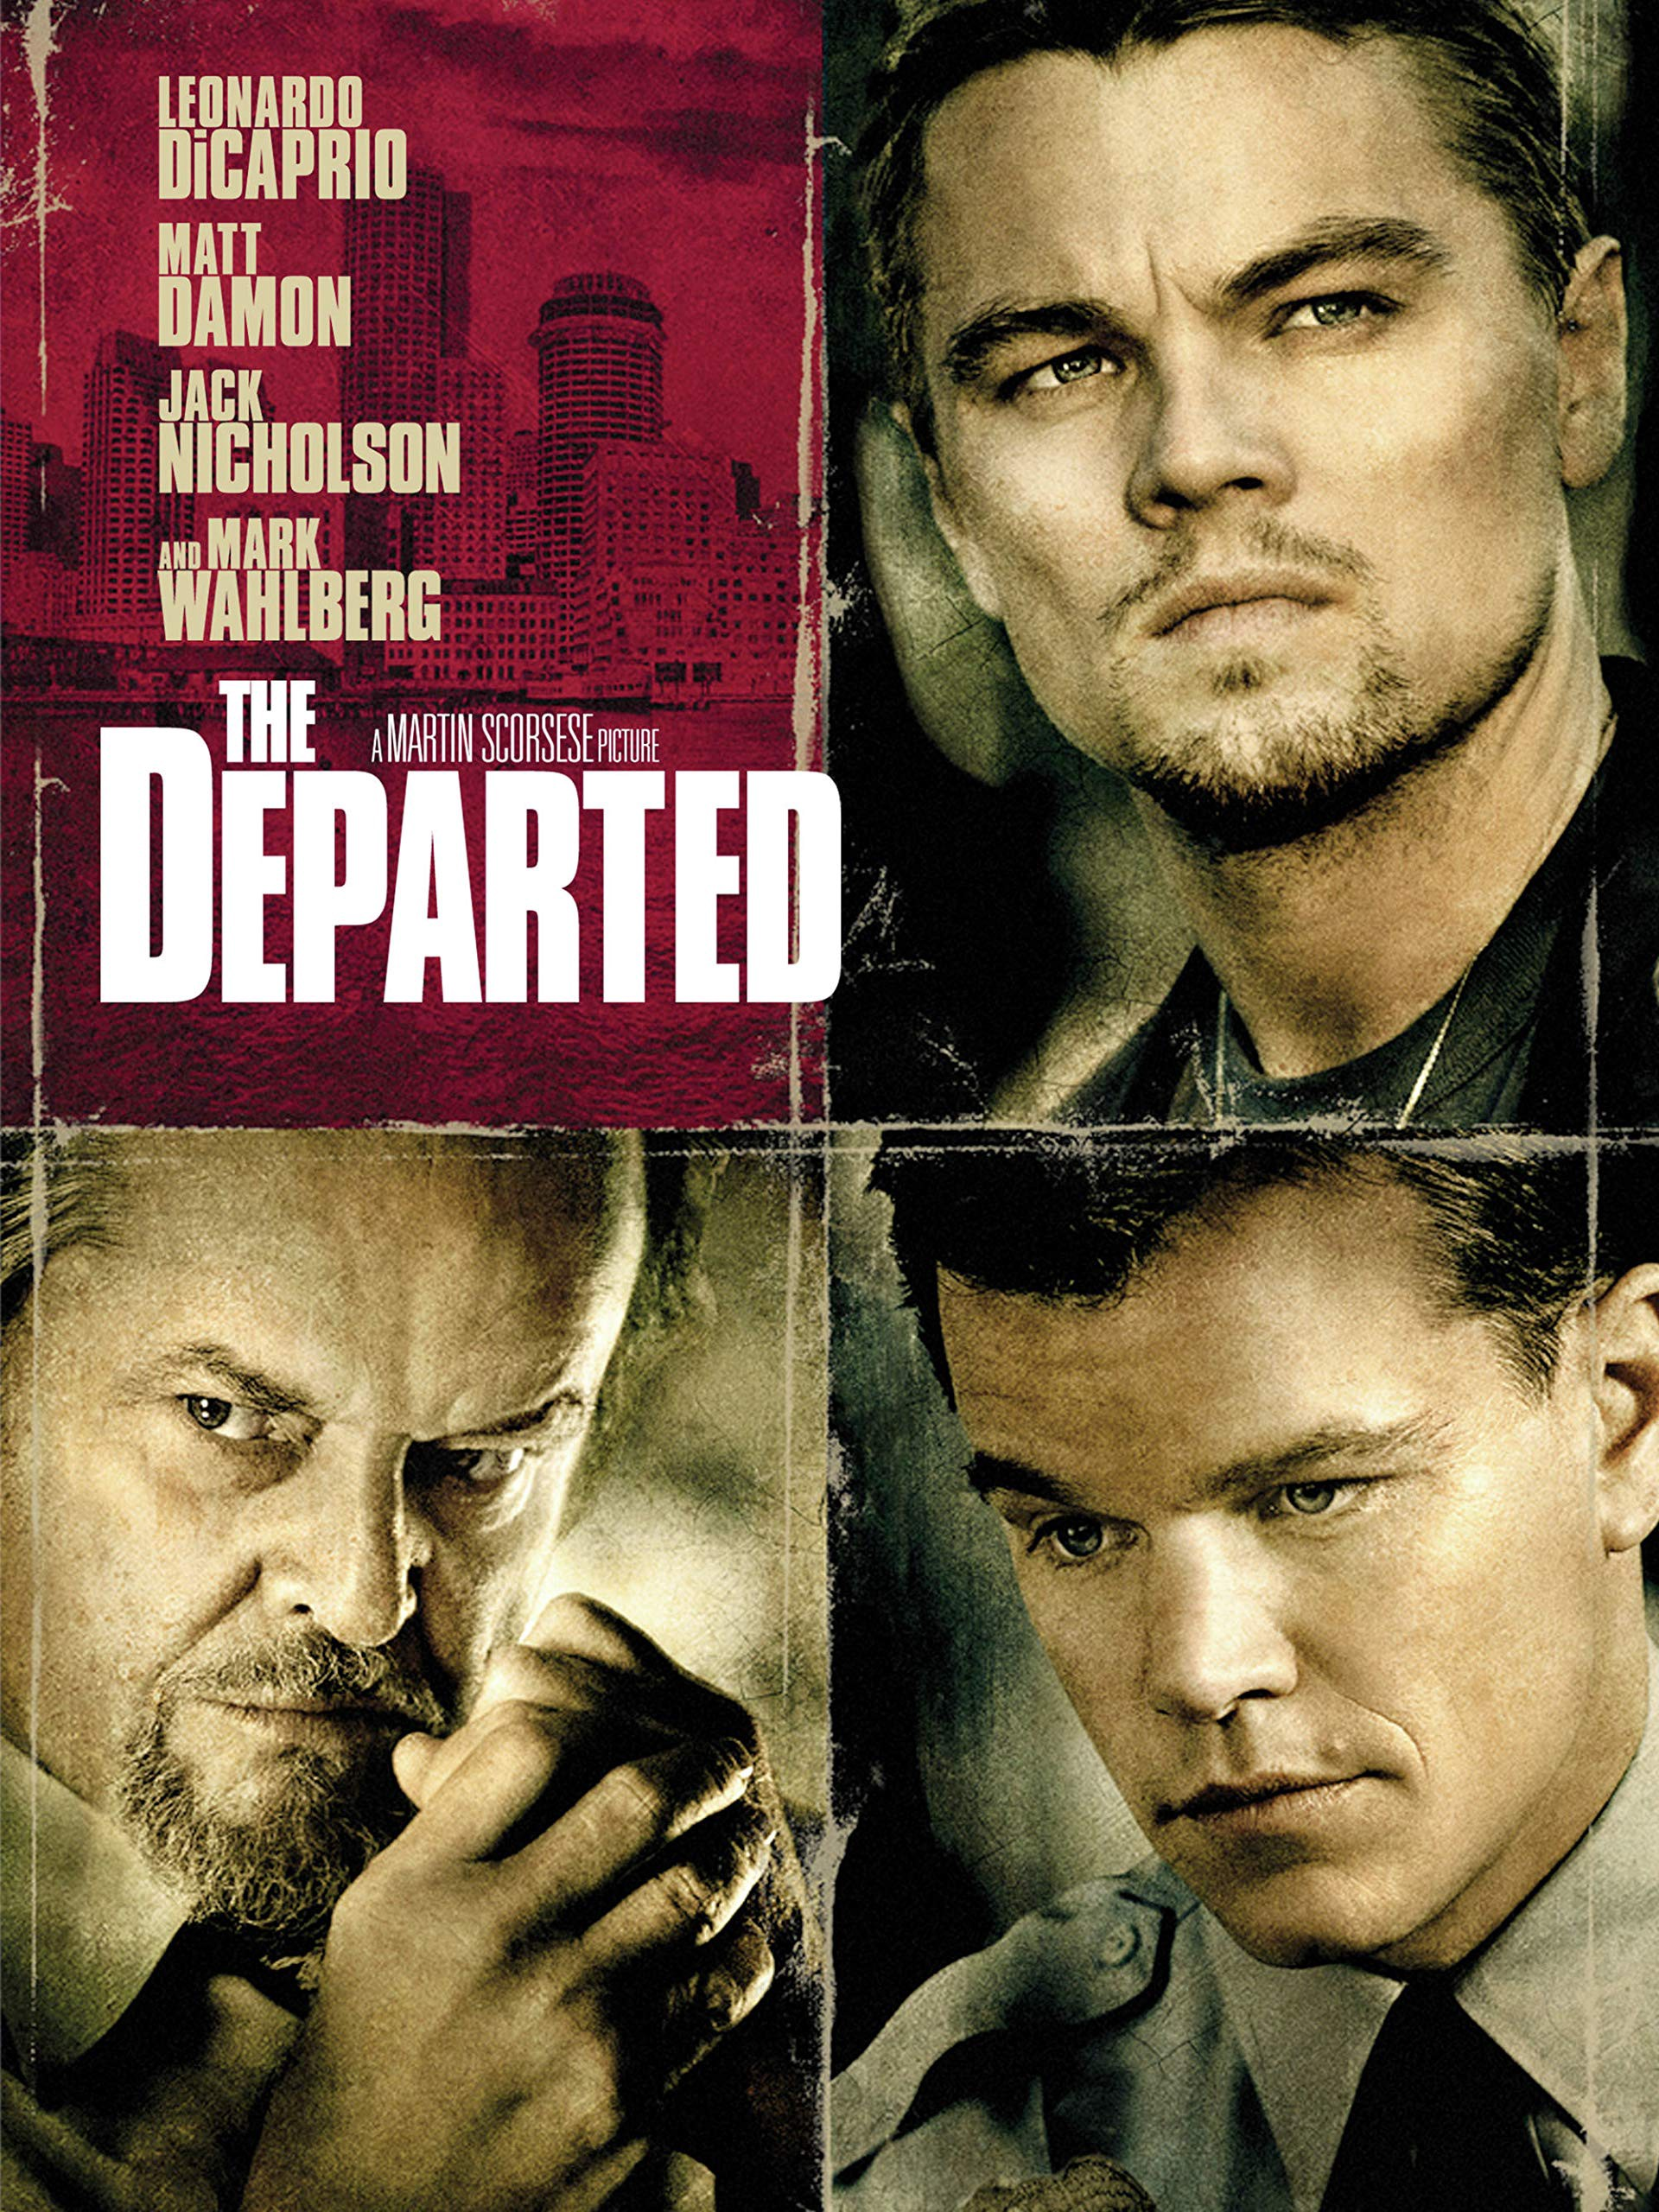 The poster for The Departed